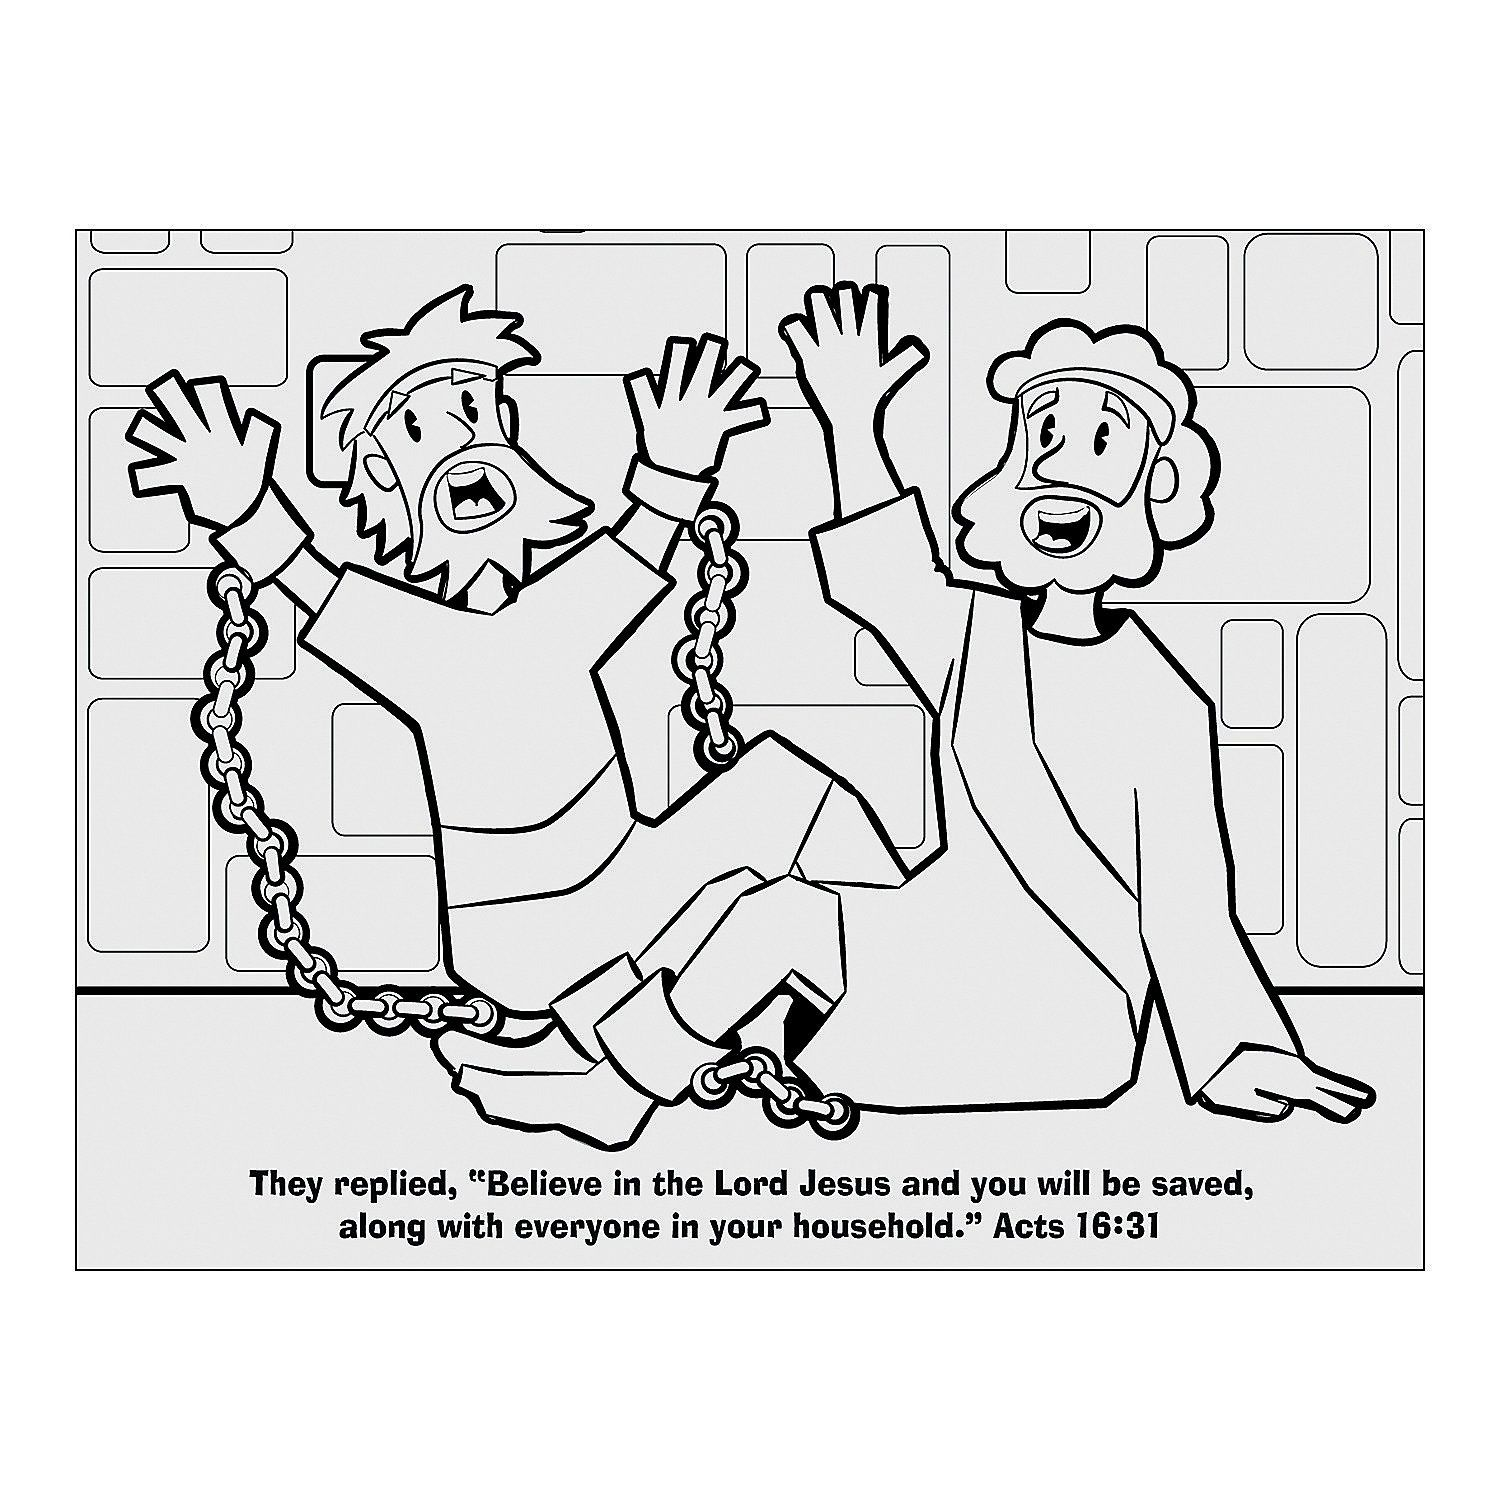 Paul And Silas Coloring Page Sunday School Coloring Sheets Paul